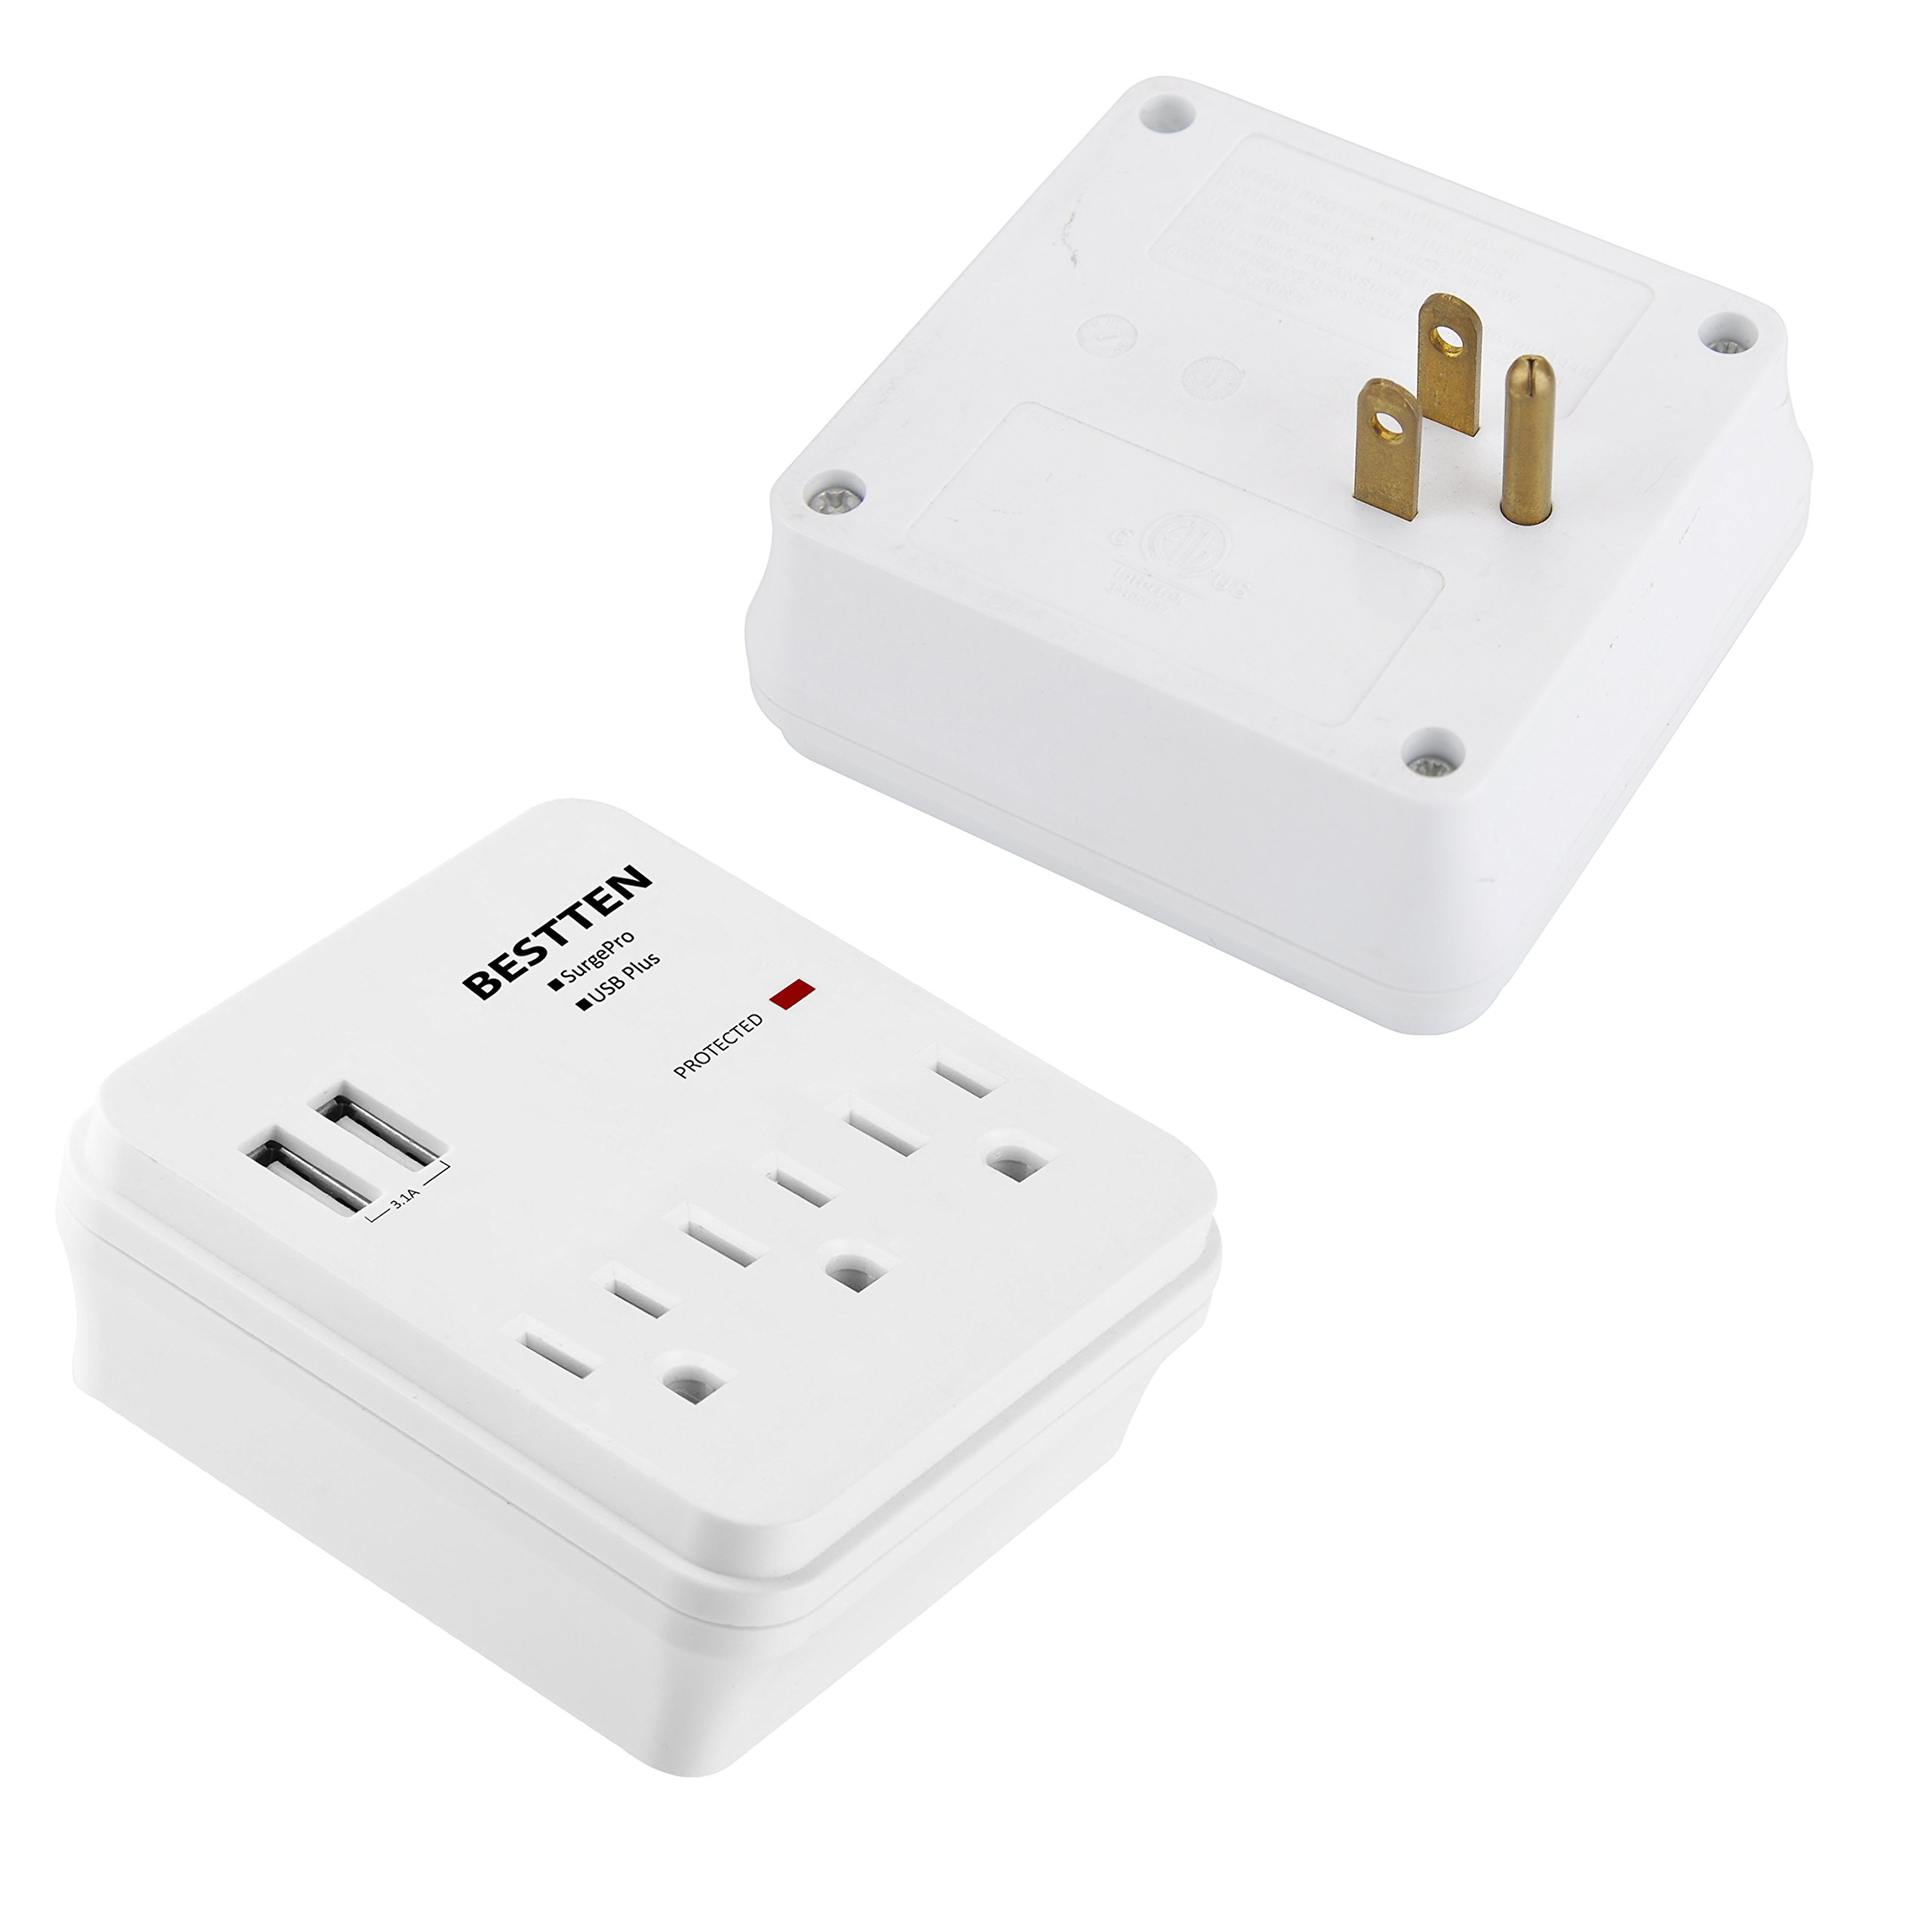 BESTTEN USB Wall Tap Surge Protector, 2 USB Charging Ports (2.4A/Port, 3.1A Total) and 3 Electrical Outlets (15A/125V/1875W), Multiple Plug-In Splitter, ETL Certified, White by BESTTEN (Image #6)